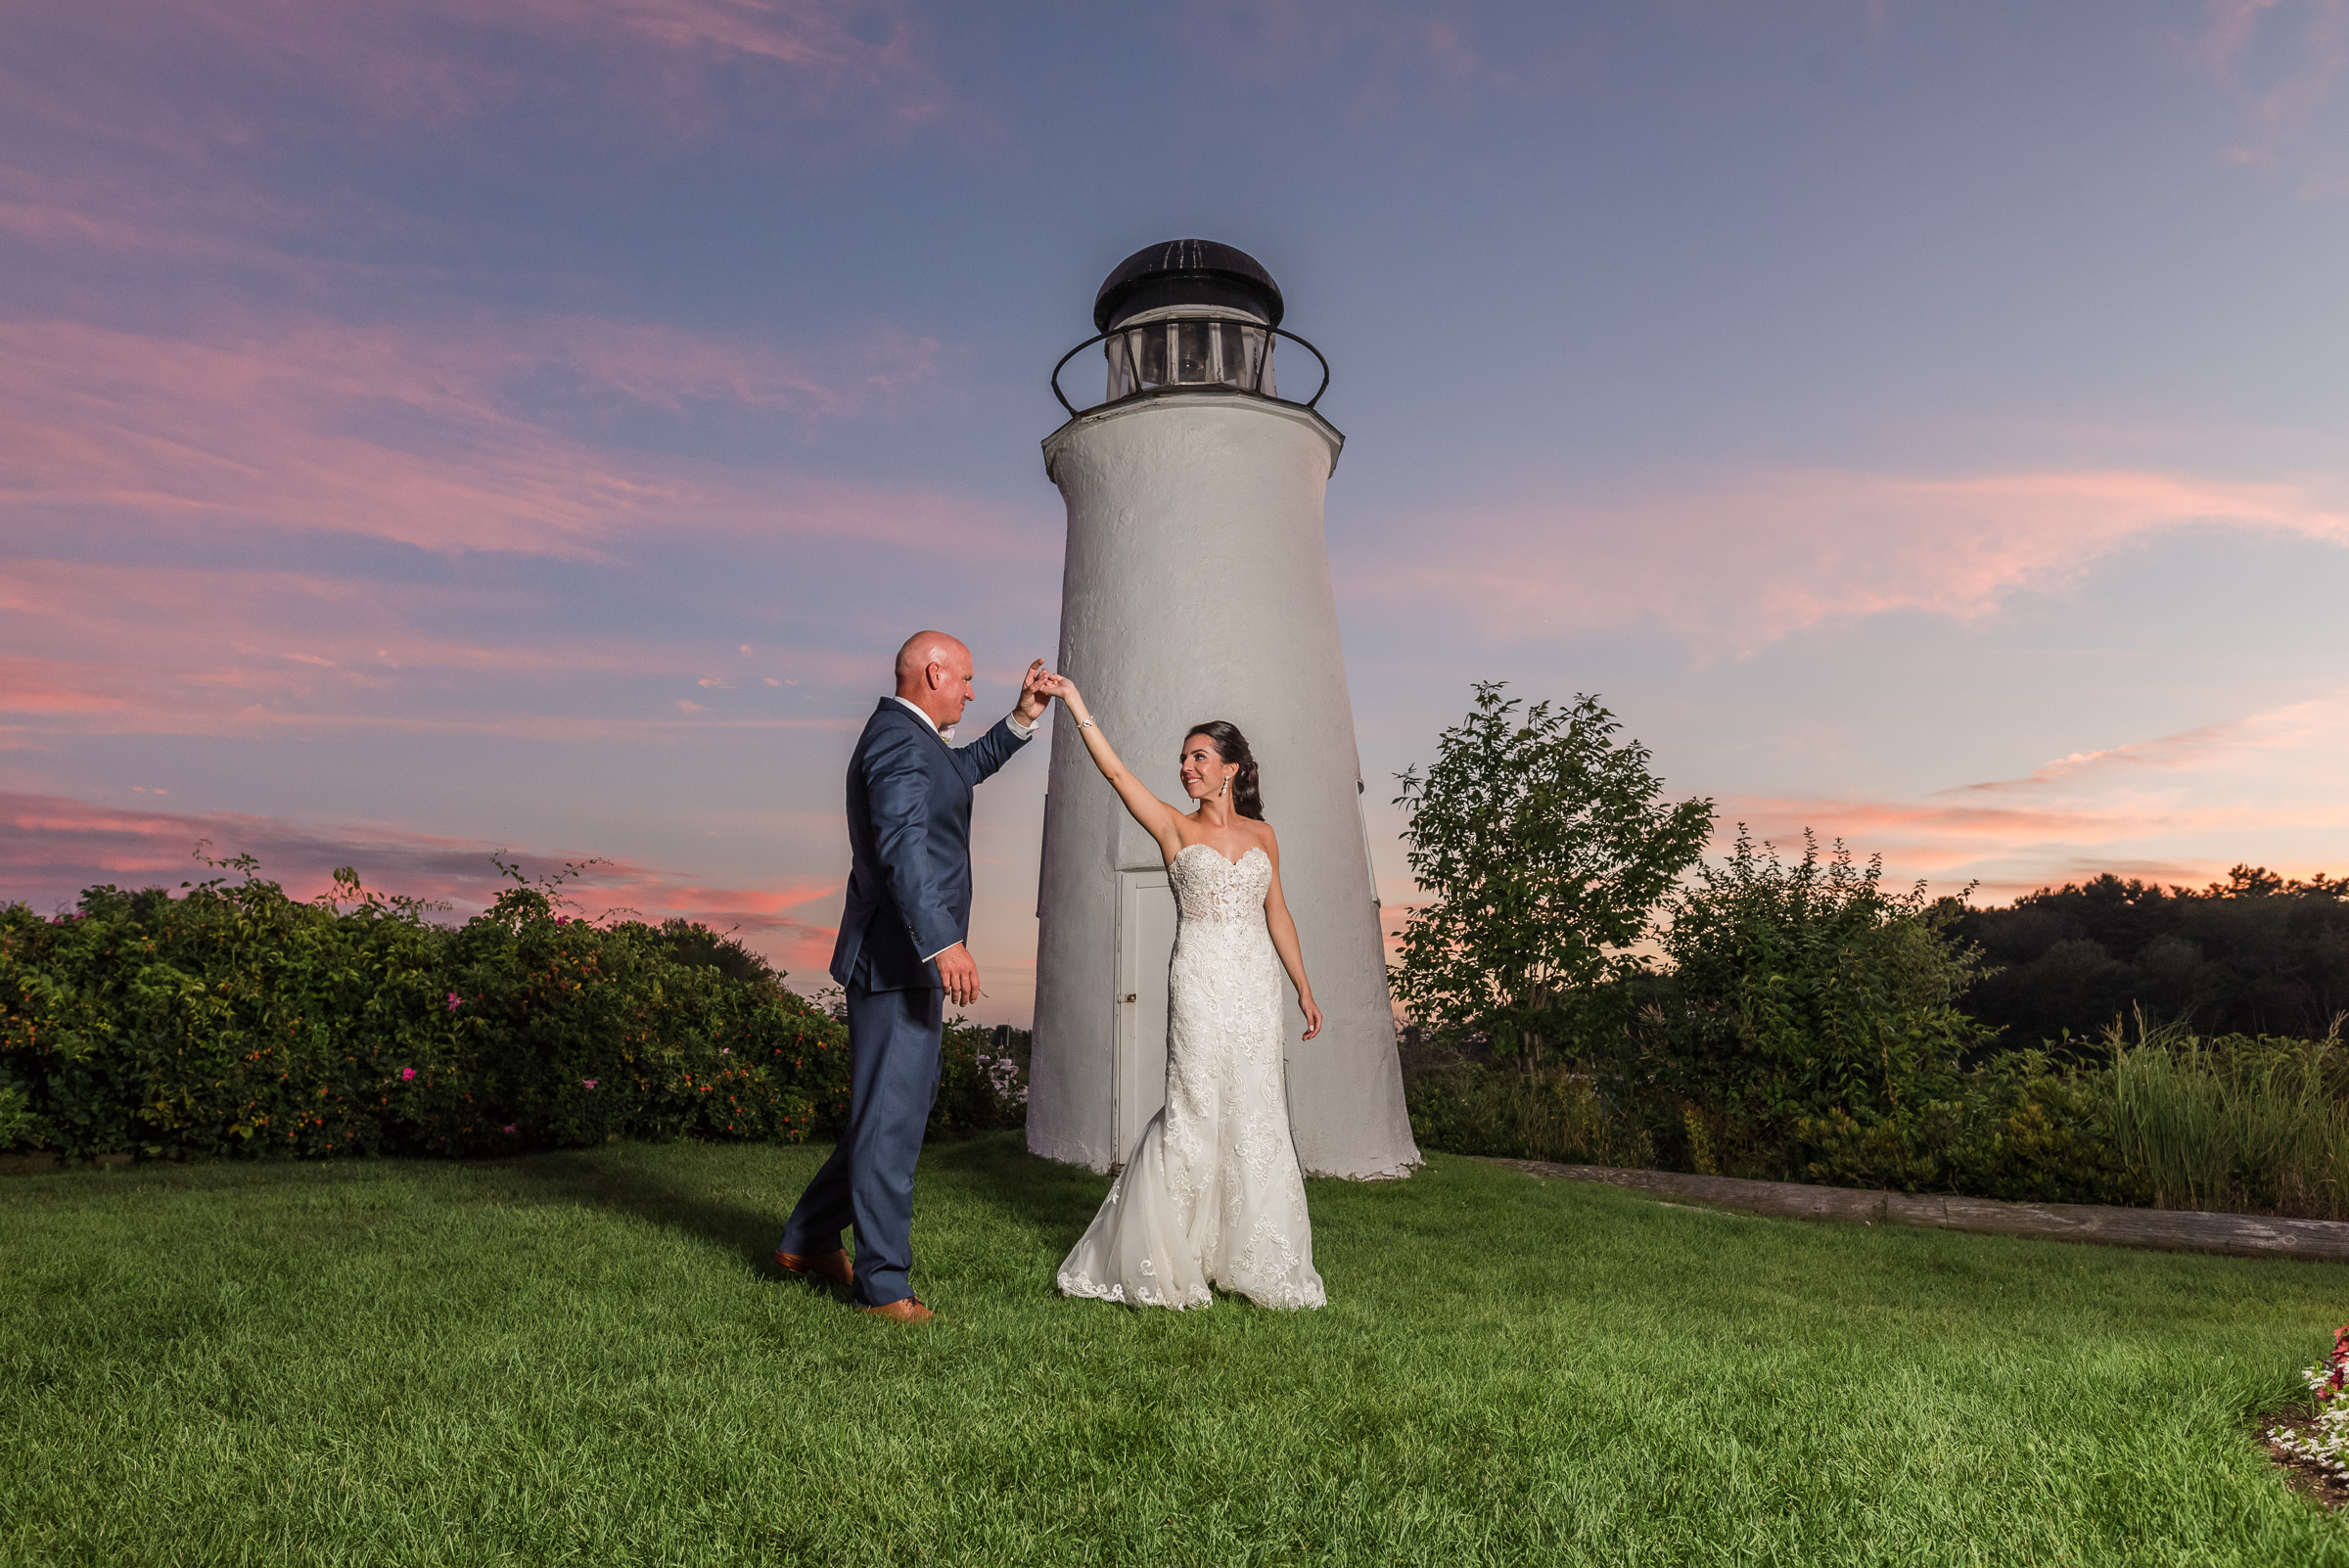 New England Lighthouse Couple | Mike Sears Photography